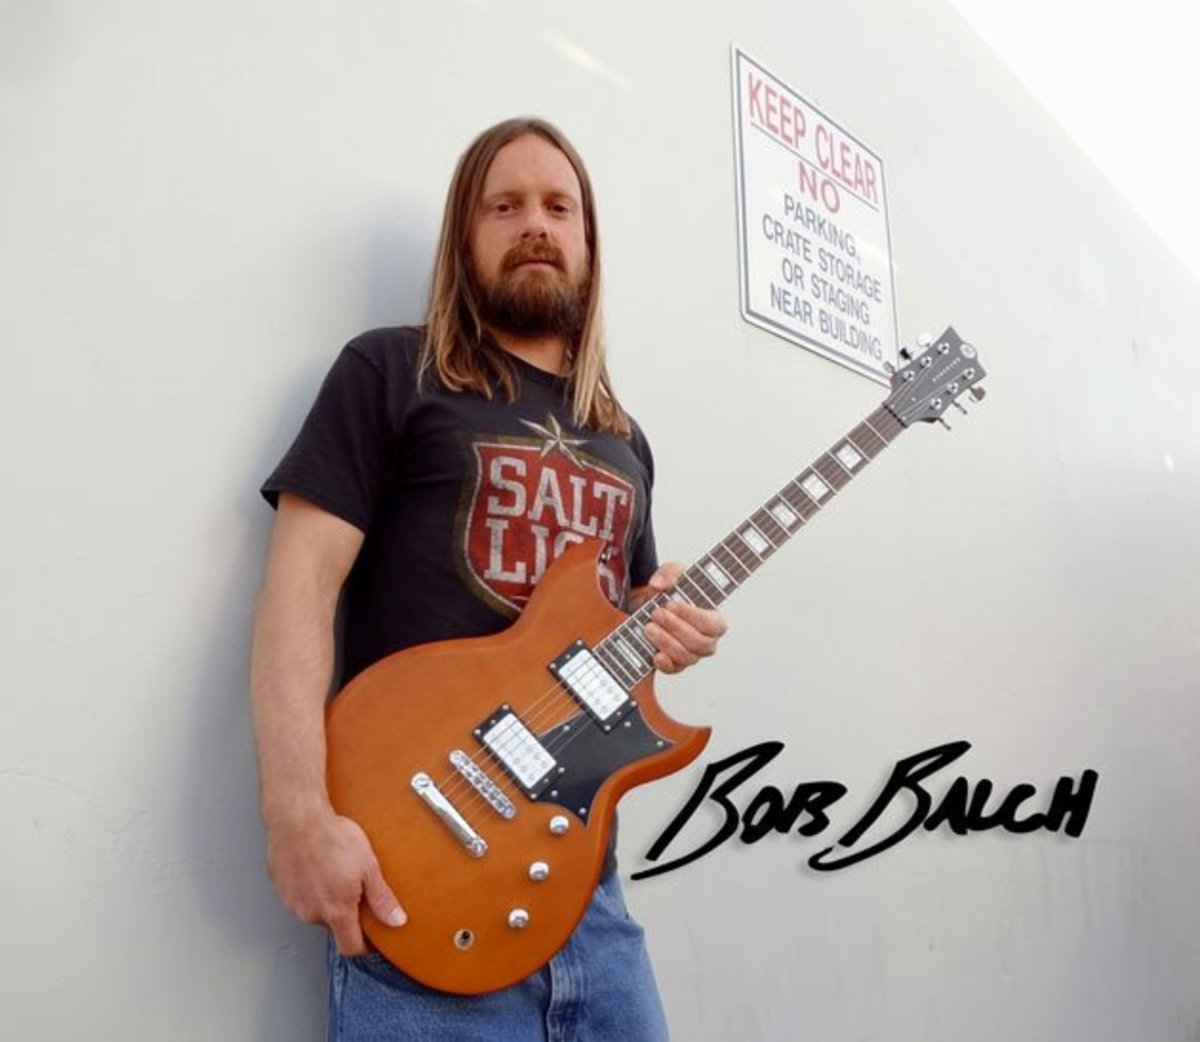 Bob Balch of Fu Manchu holding his Reverend Signature guitar